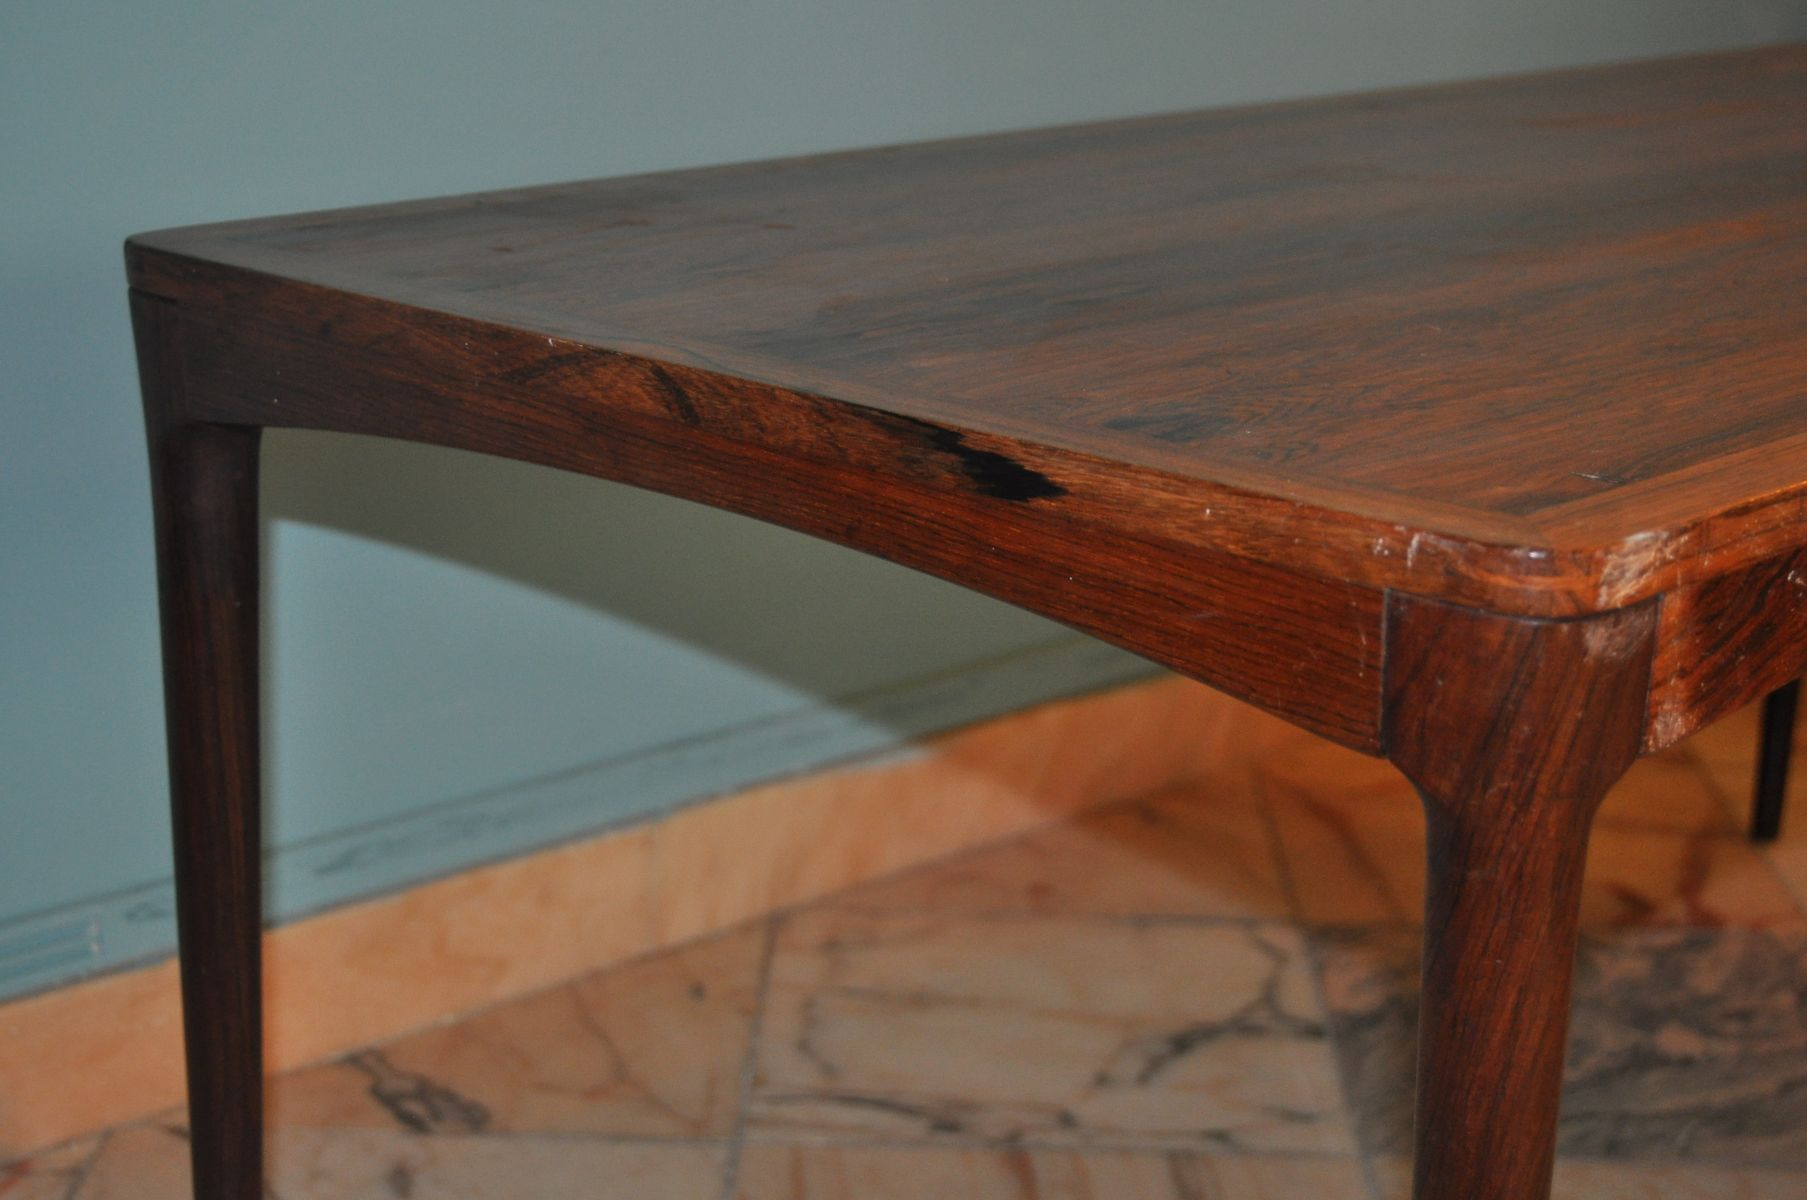 Low Rosewood Coffee Table By Haug Bruksbo For Sale At Pamono